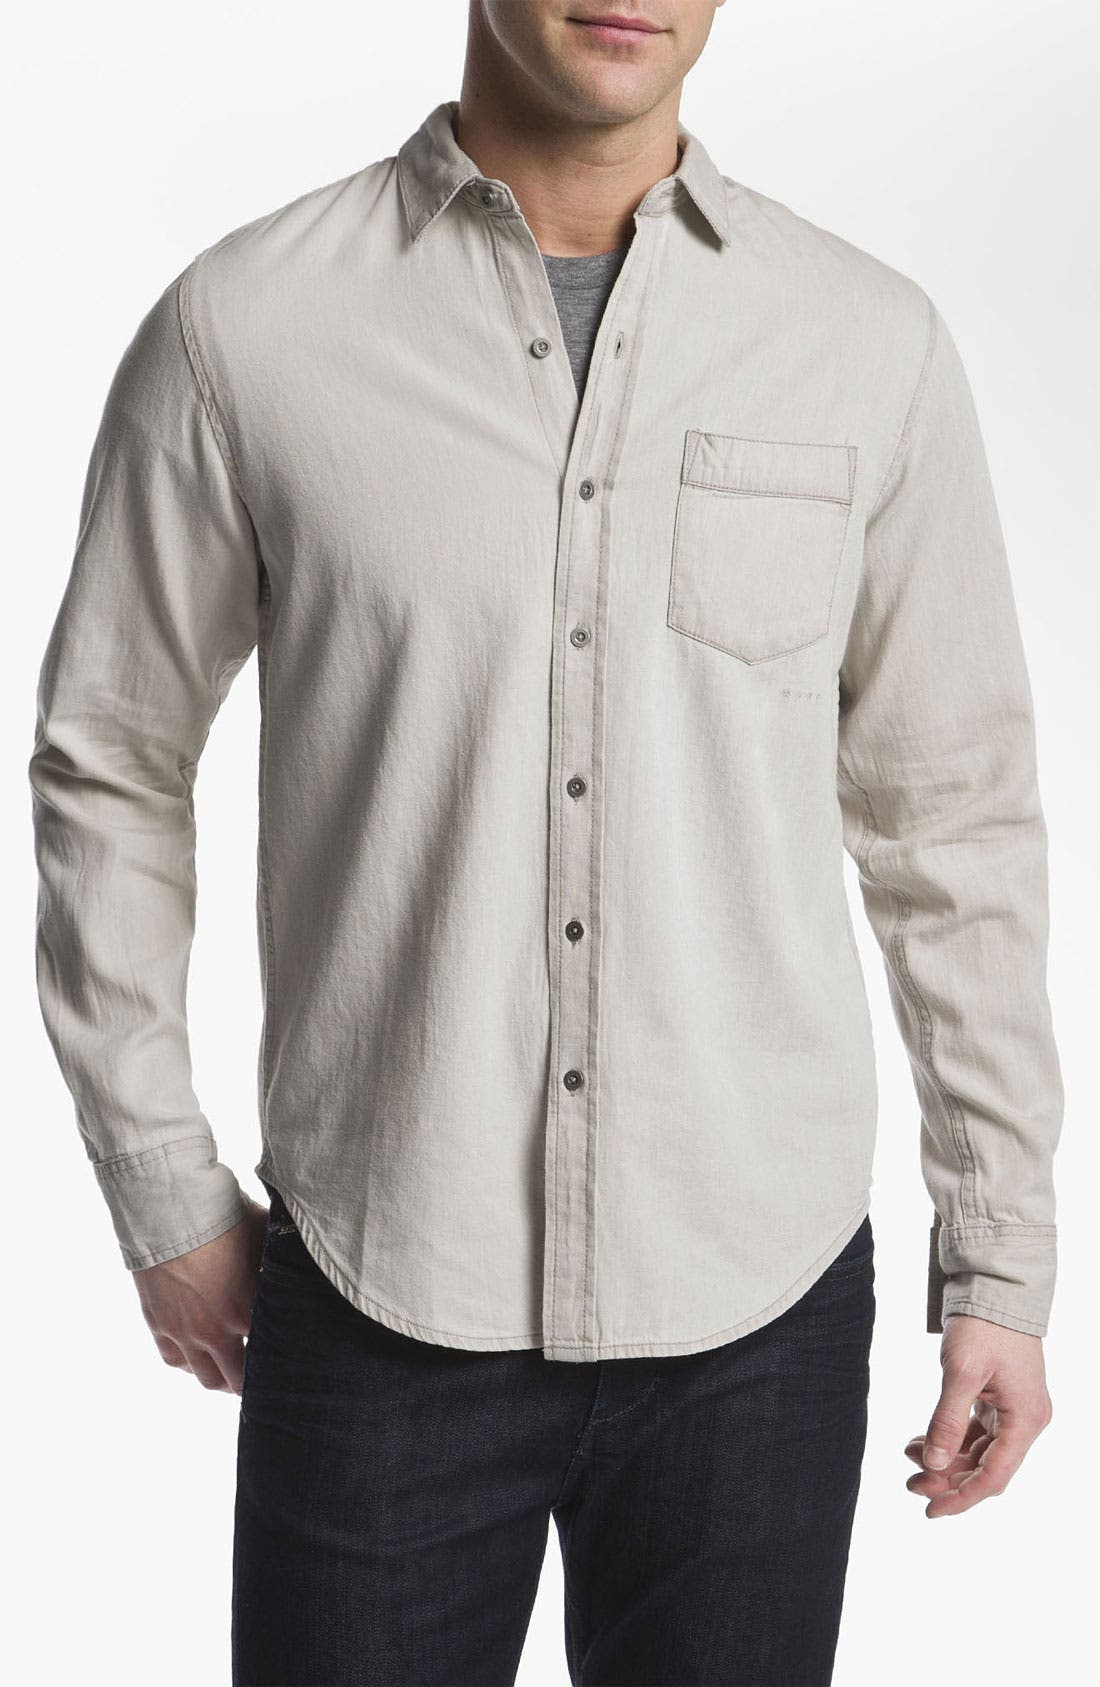 Alternate Image 1 Selected - RVCA 'Bleach' Slim Fit Sport Shirt